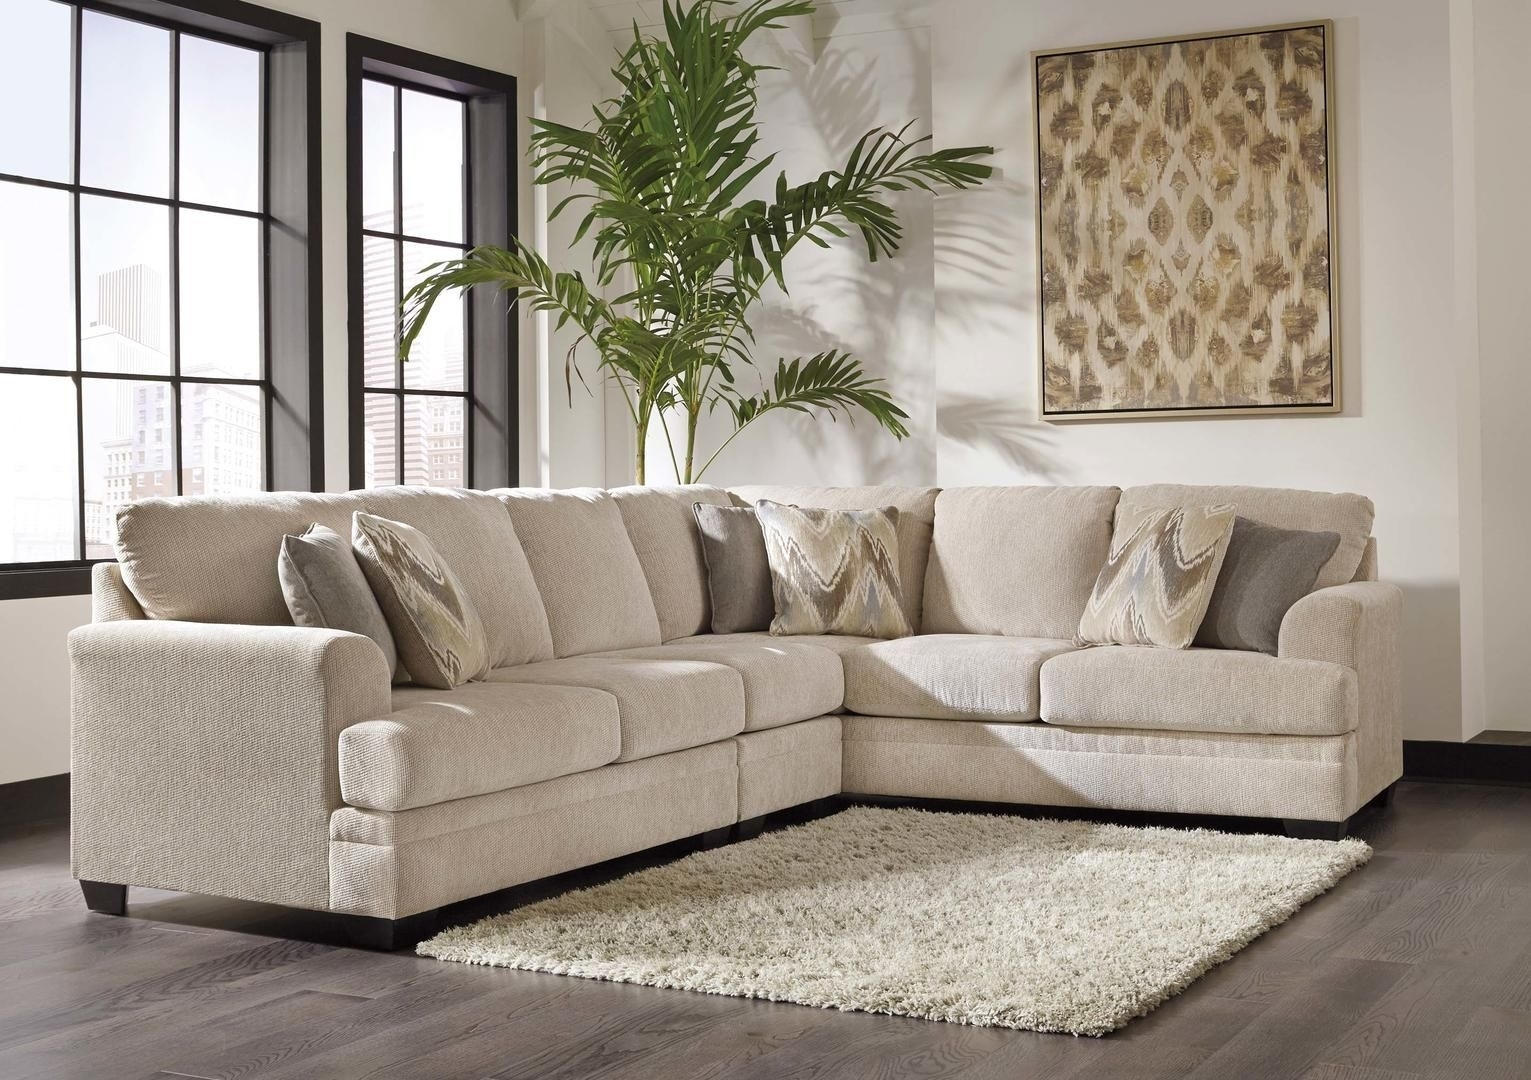 Ameer 81806 55 46 67 3 Piece Fabric Sectional Sofa With Left Arm In Malbry Point 3 Piece Sectionals With Raf Chaise (View 12 of 30)